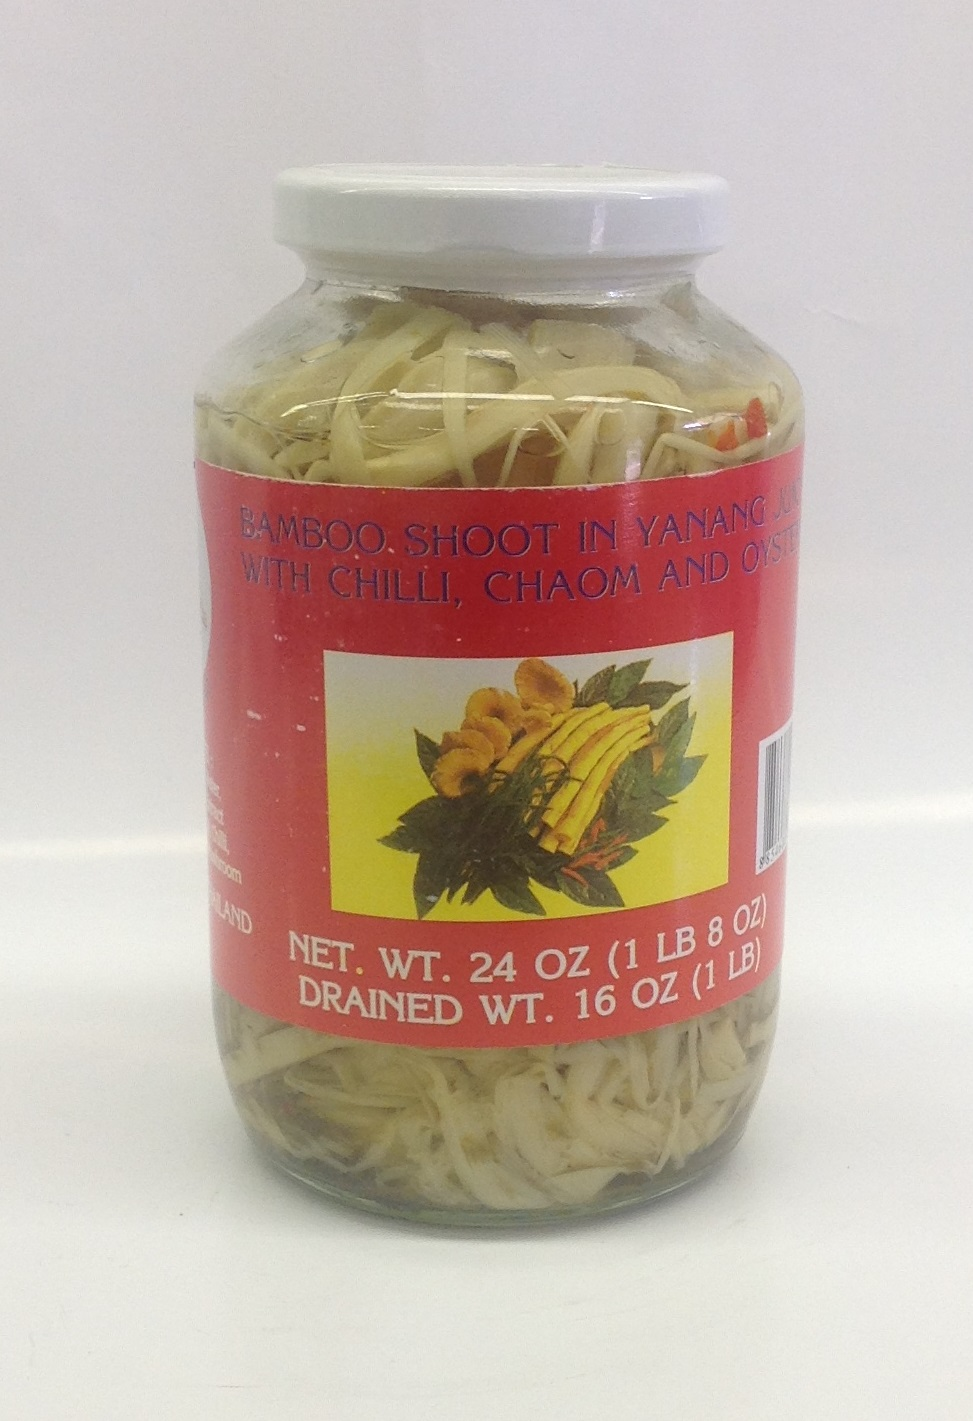 Bamboo Shoot in Yanang Juice with Chilli, Chaom, and Osyter Mushroom    Bird's    BBY1510 12x24 oz